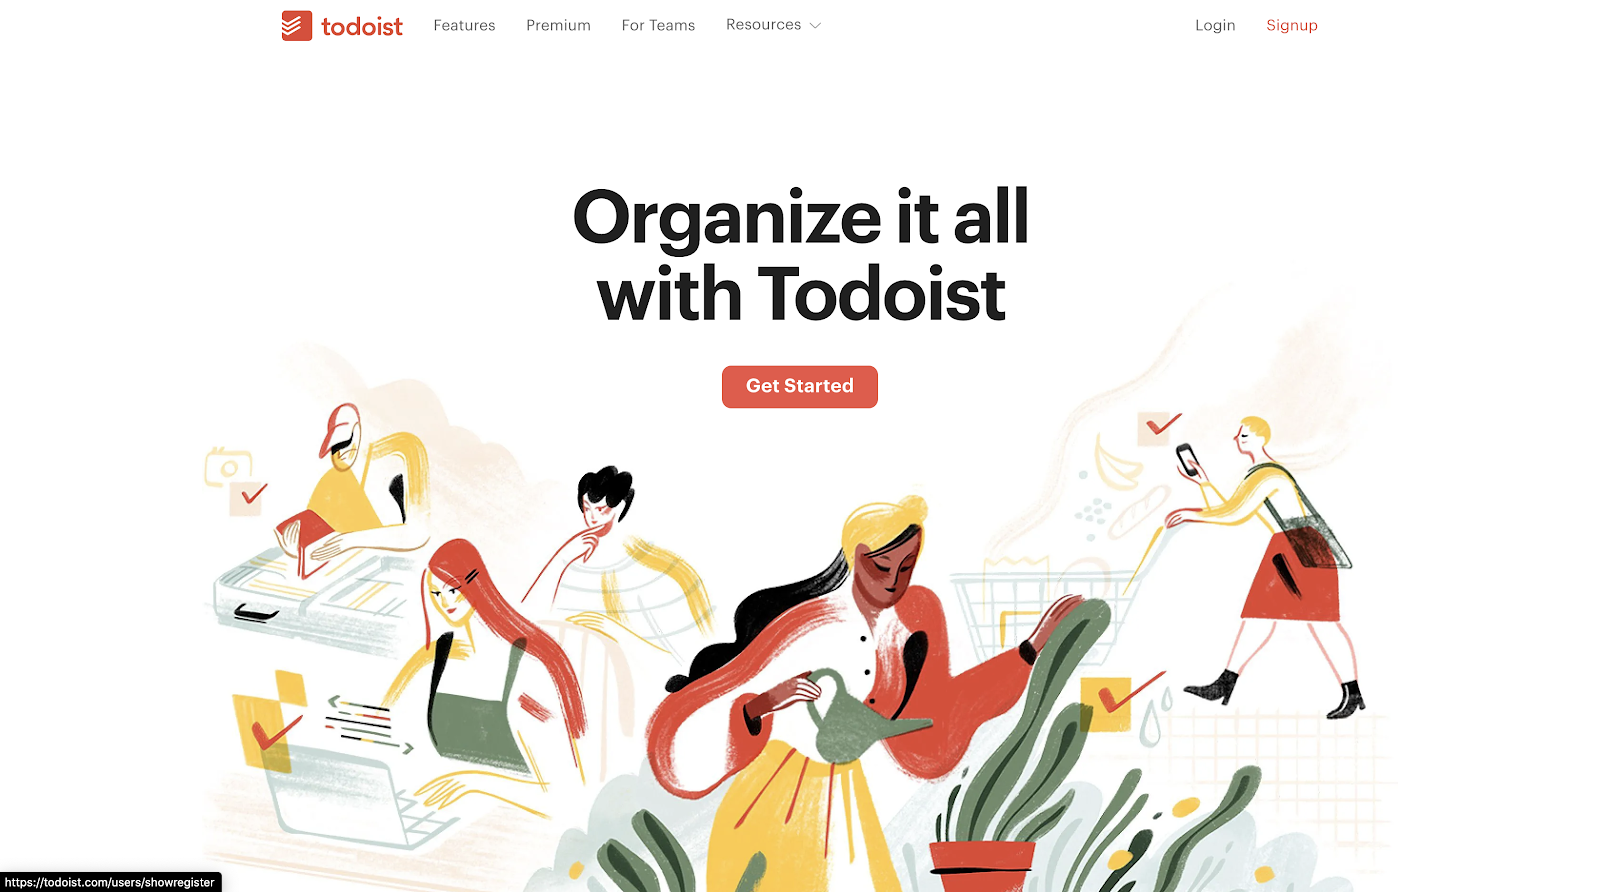 todoist - Organize it all with Todoist